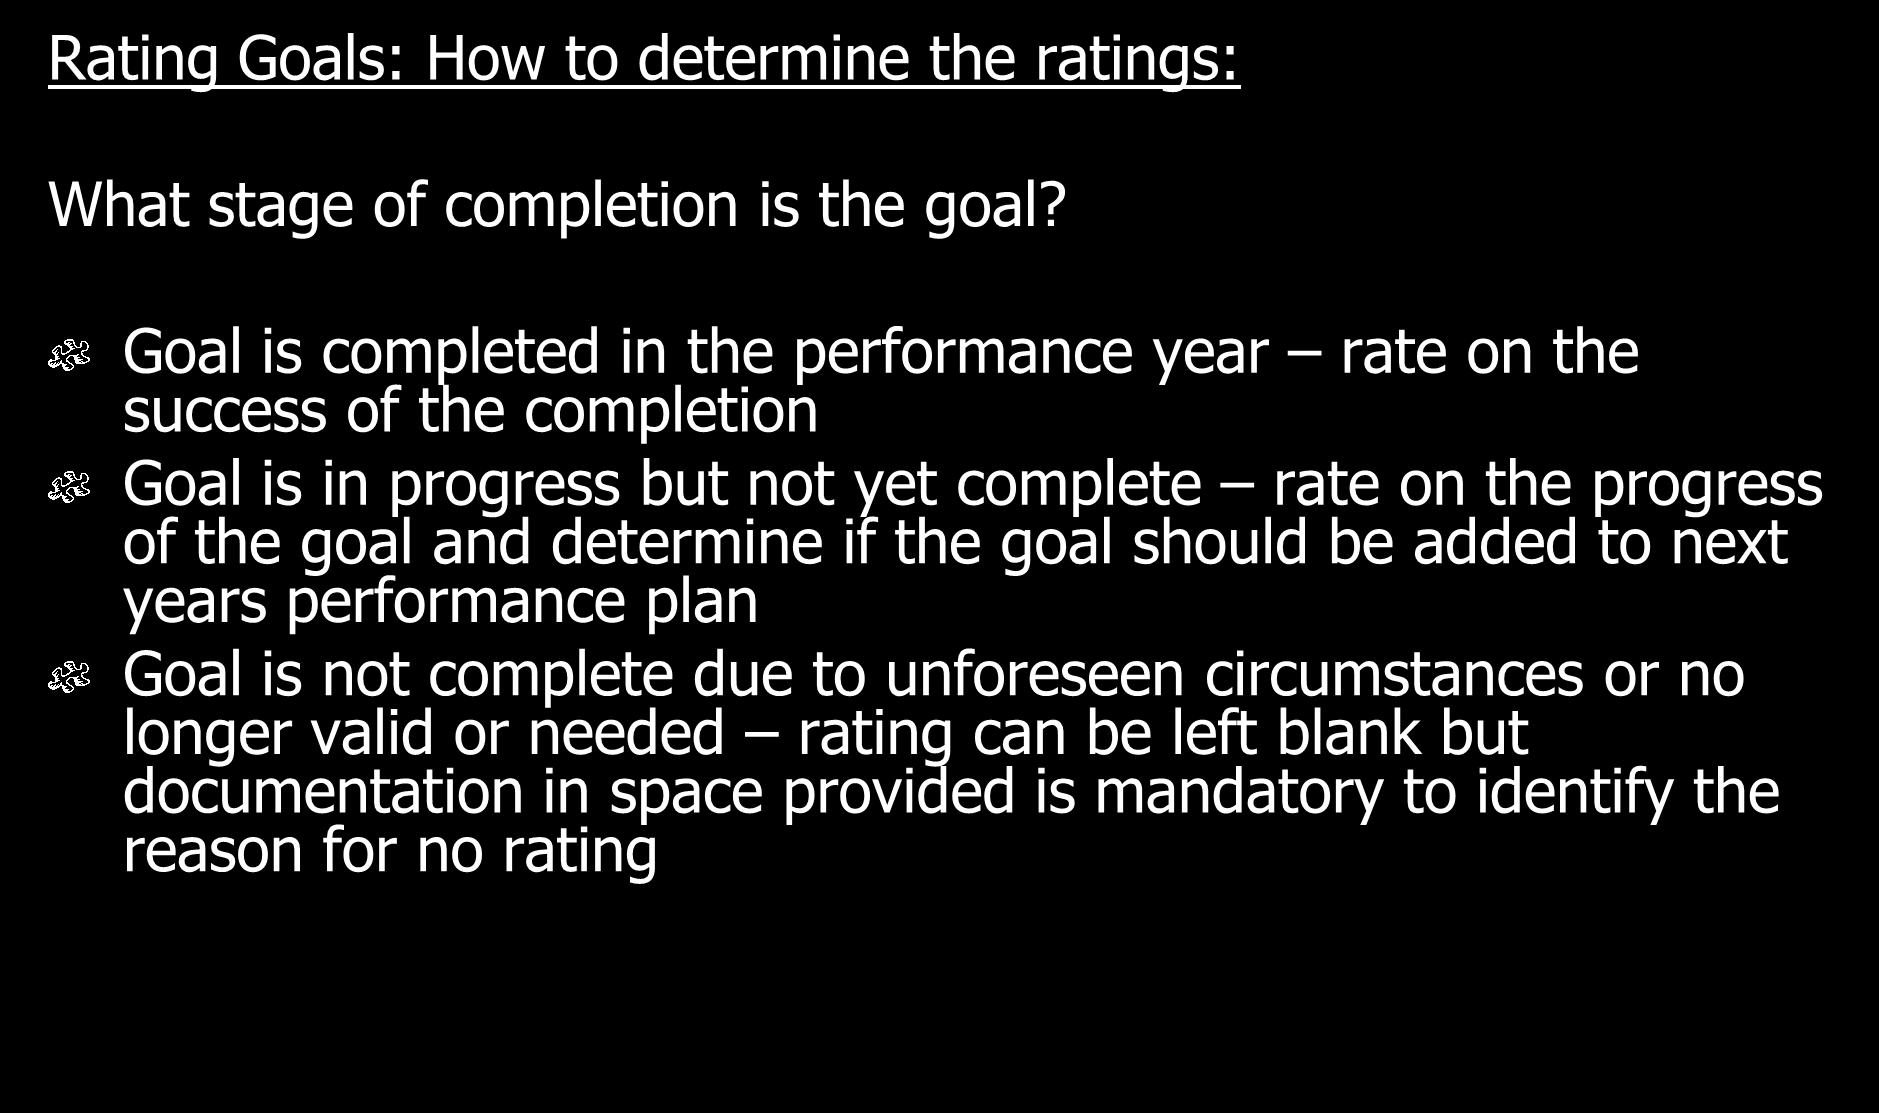 Rating Goals: How to determine the ratings: What stage of completion is the goal?